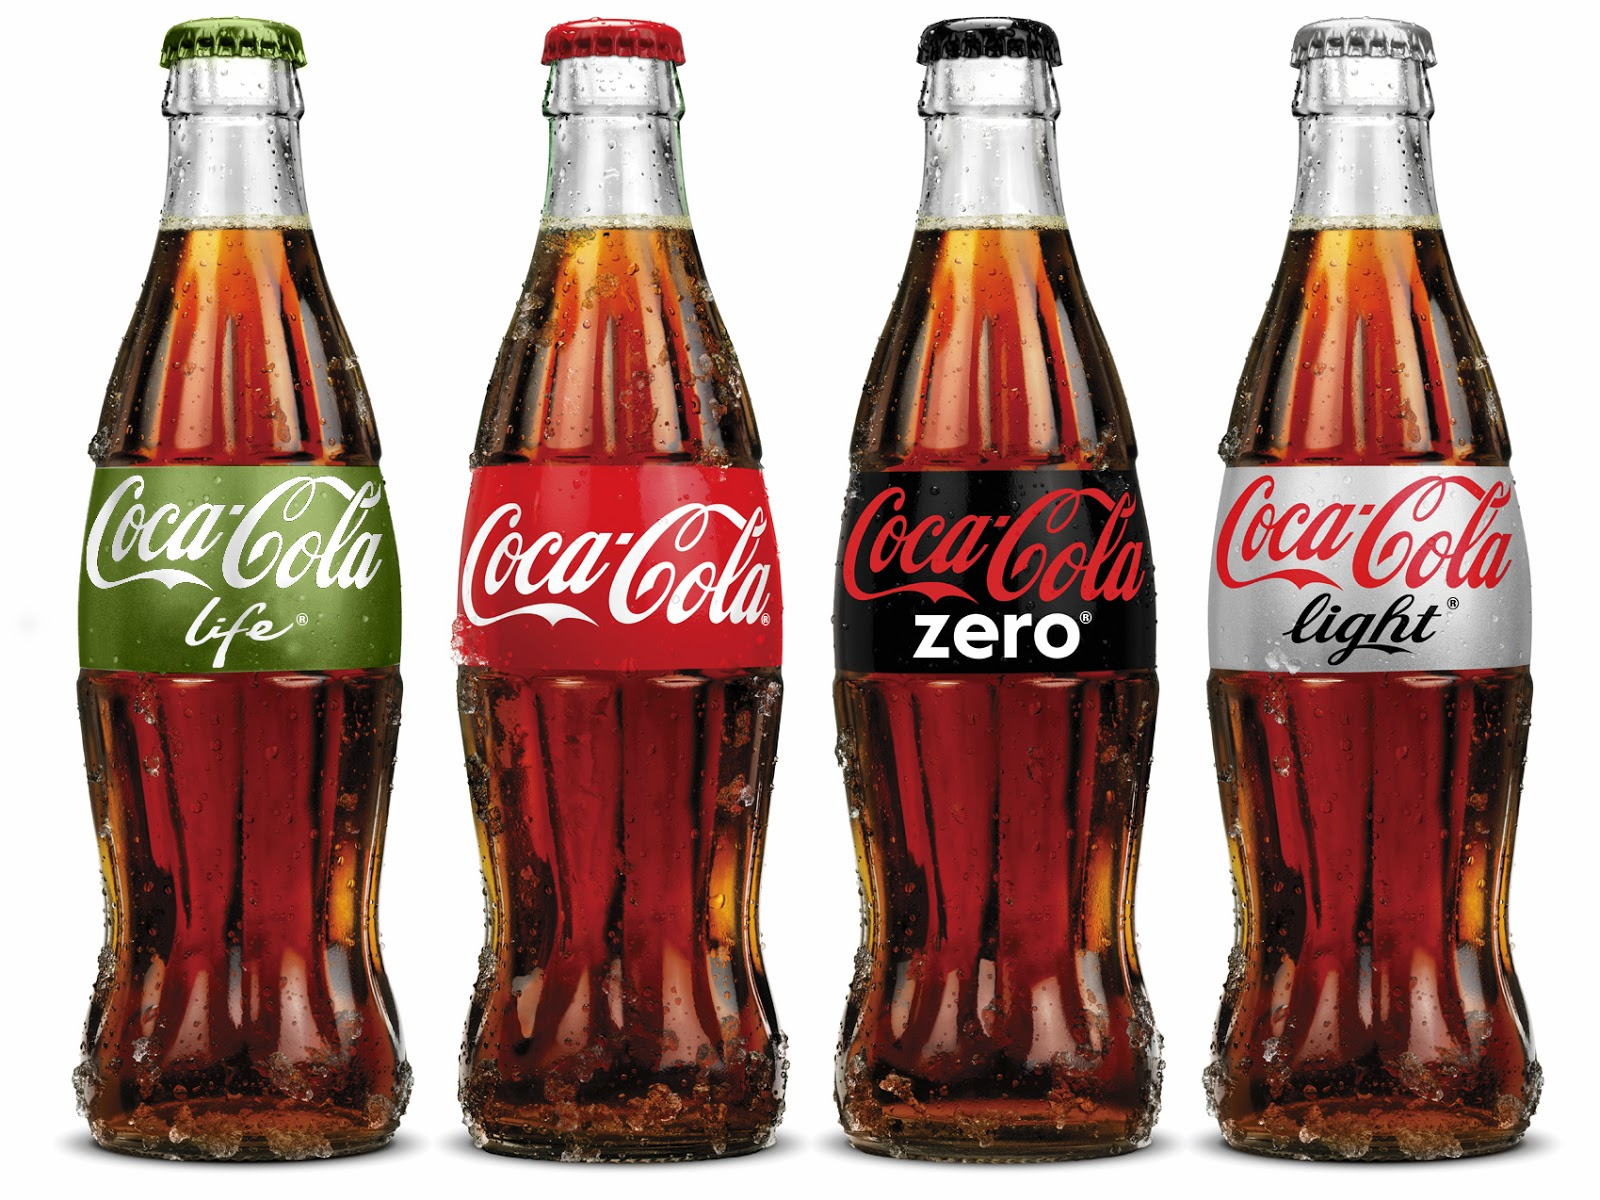 2 people are trying to sue Coca-Cola over 'natural' branding